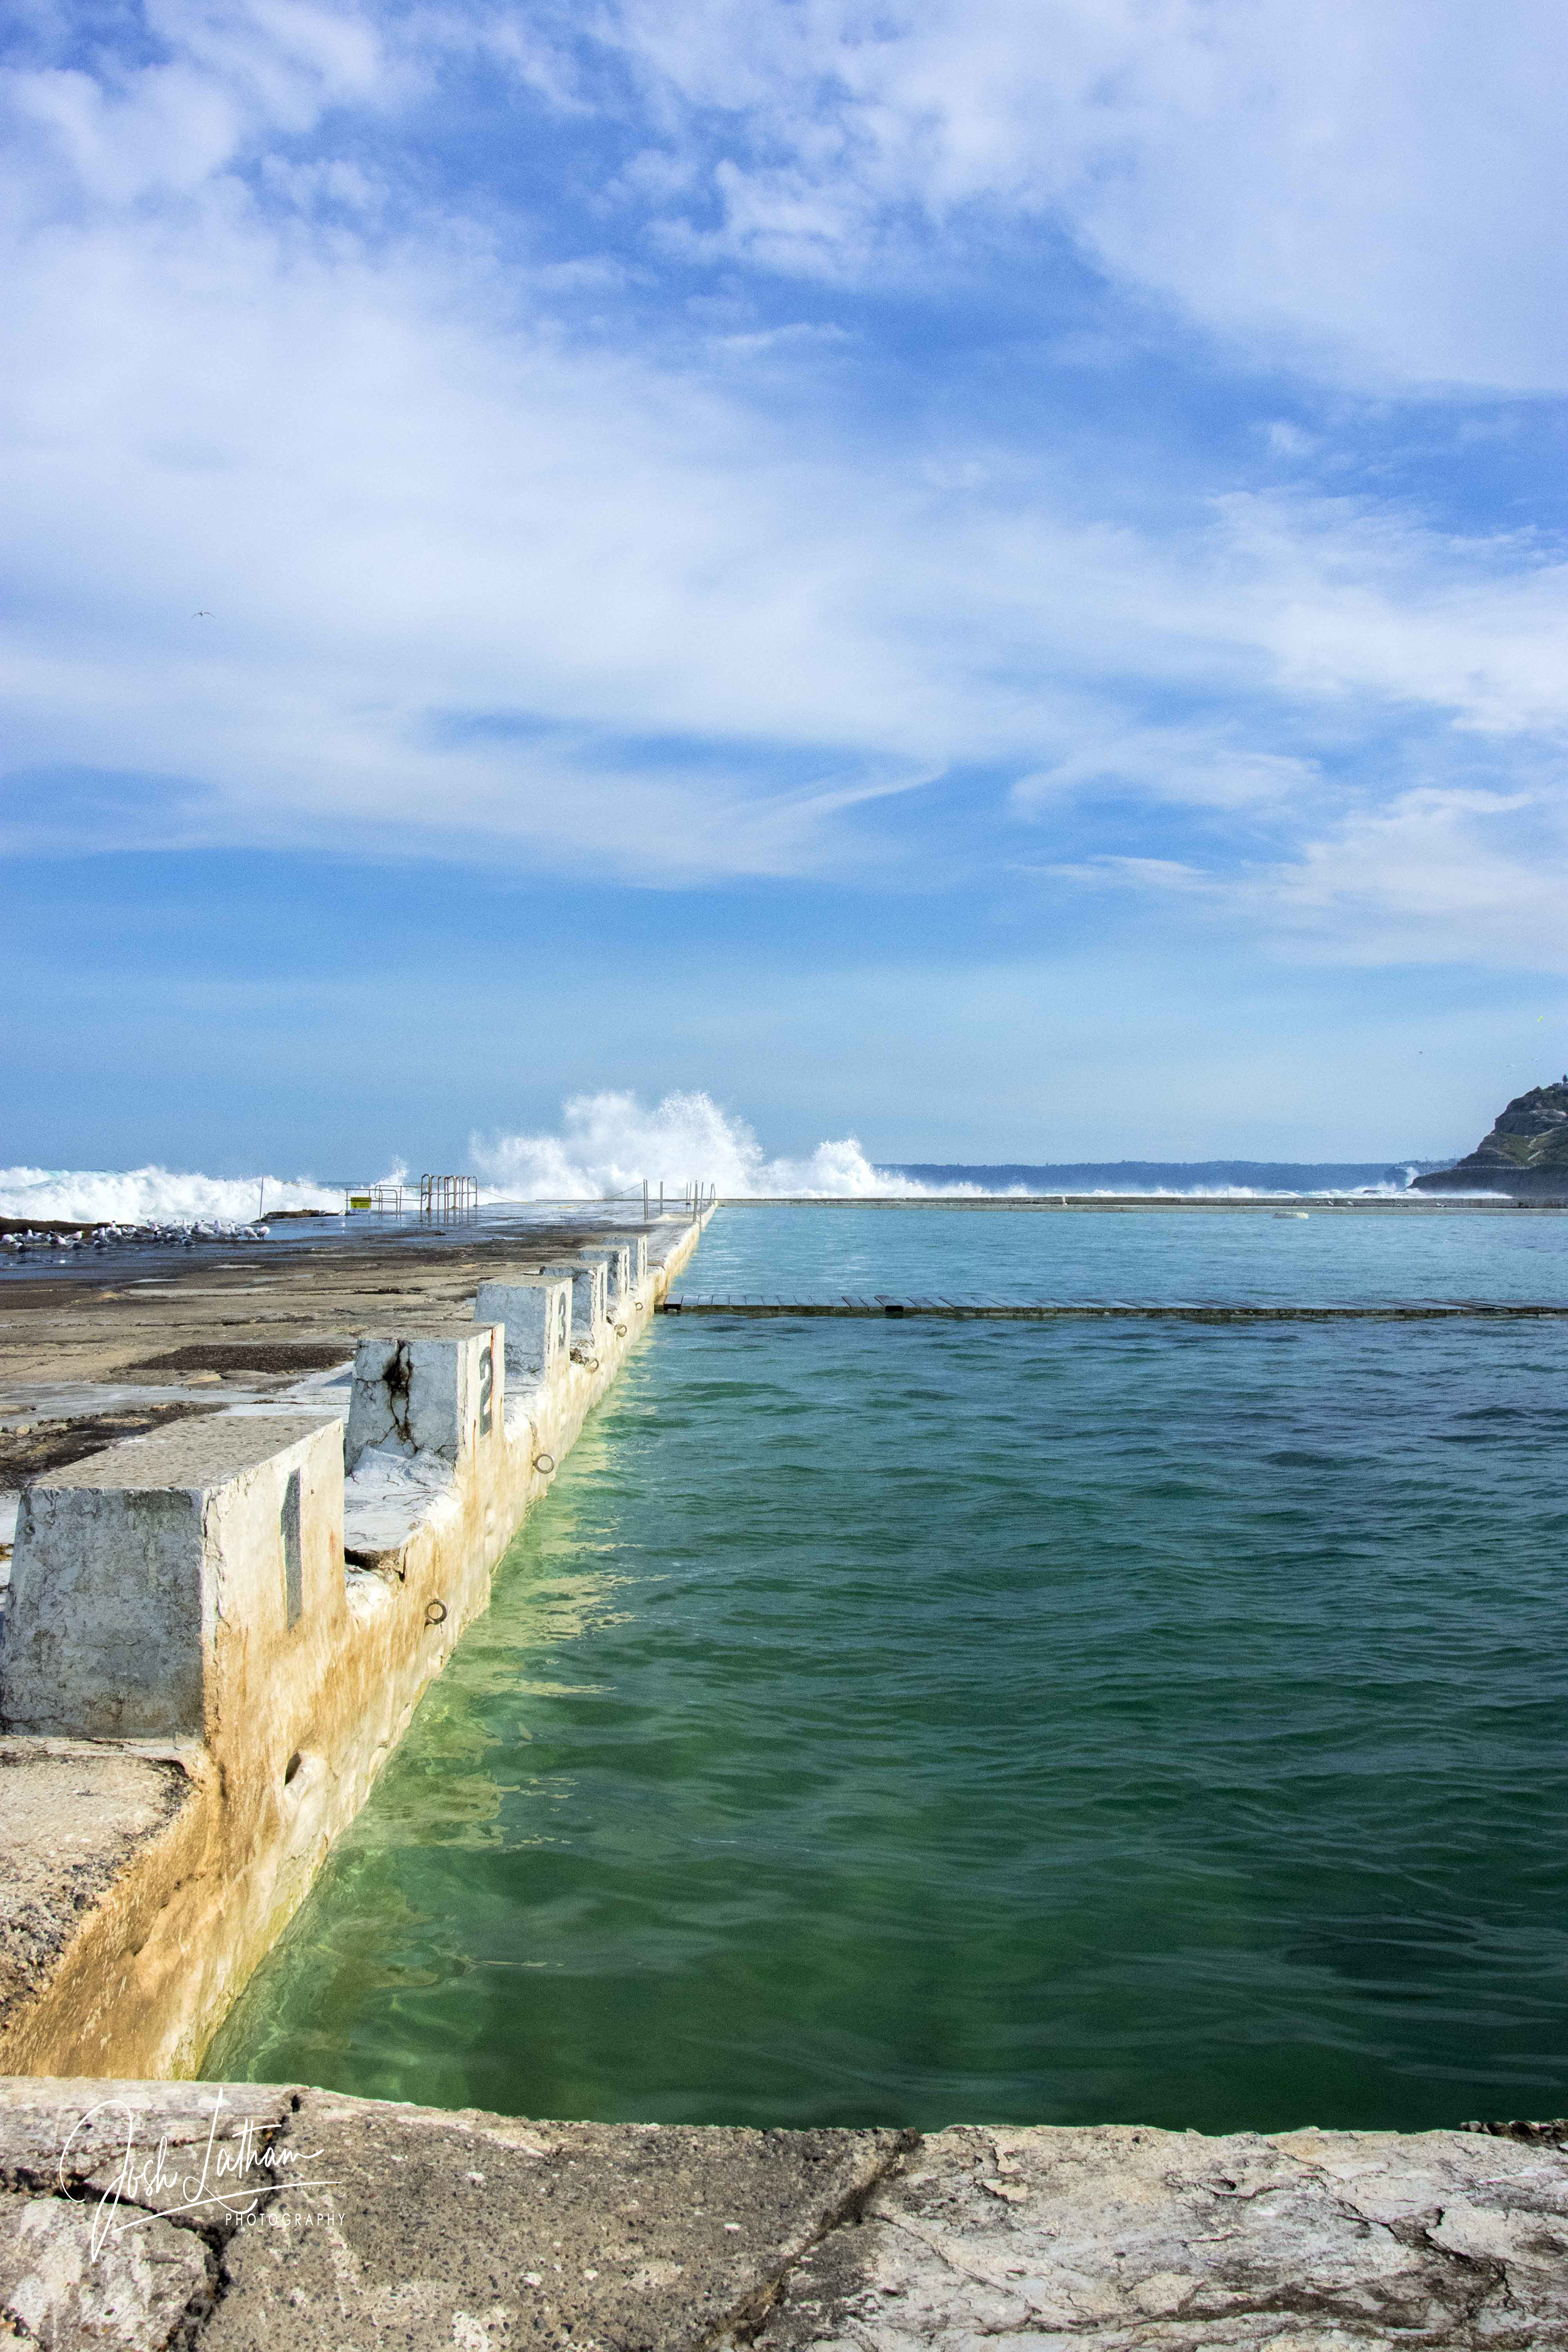 Ocean Baths at Newcastle, New South Wales, Australia